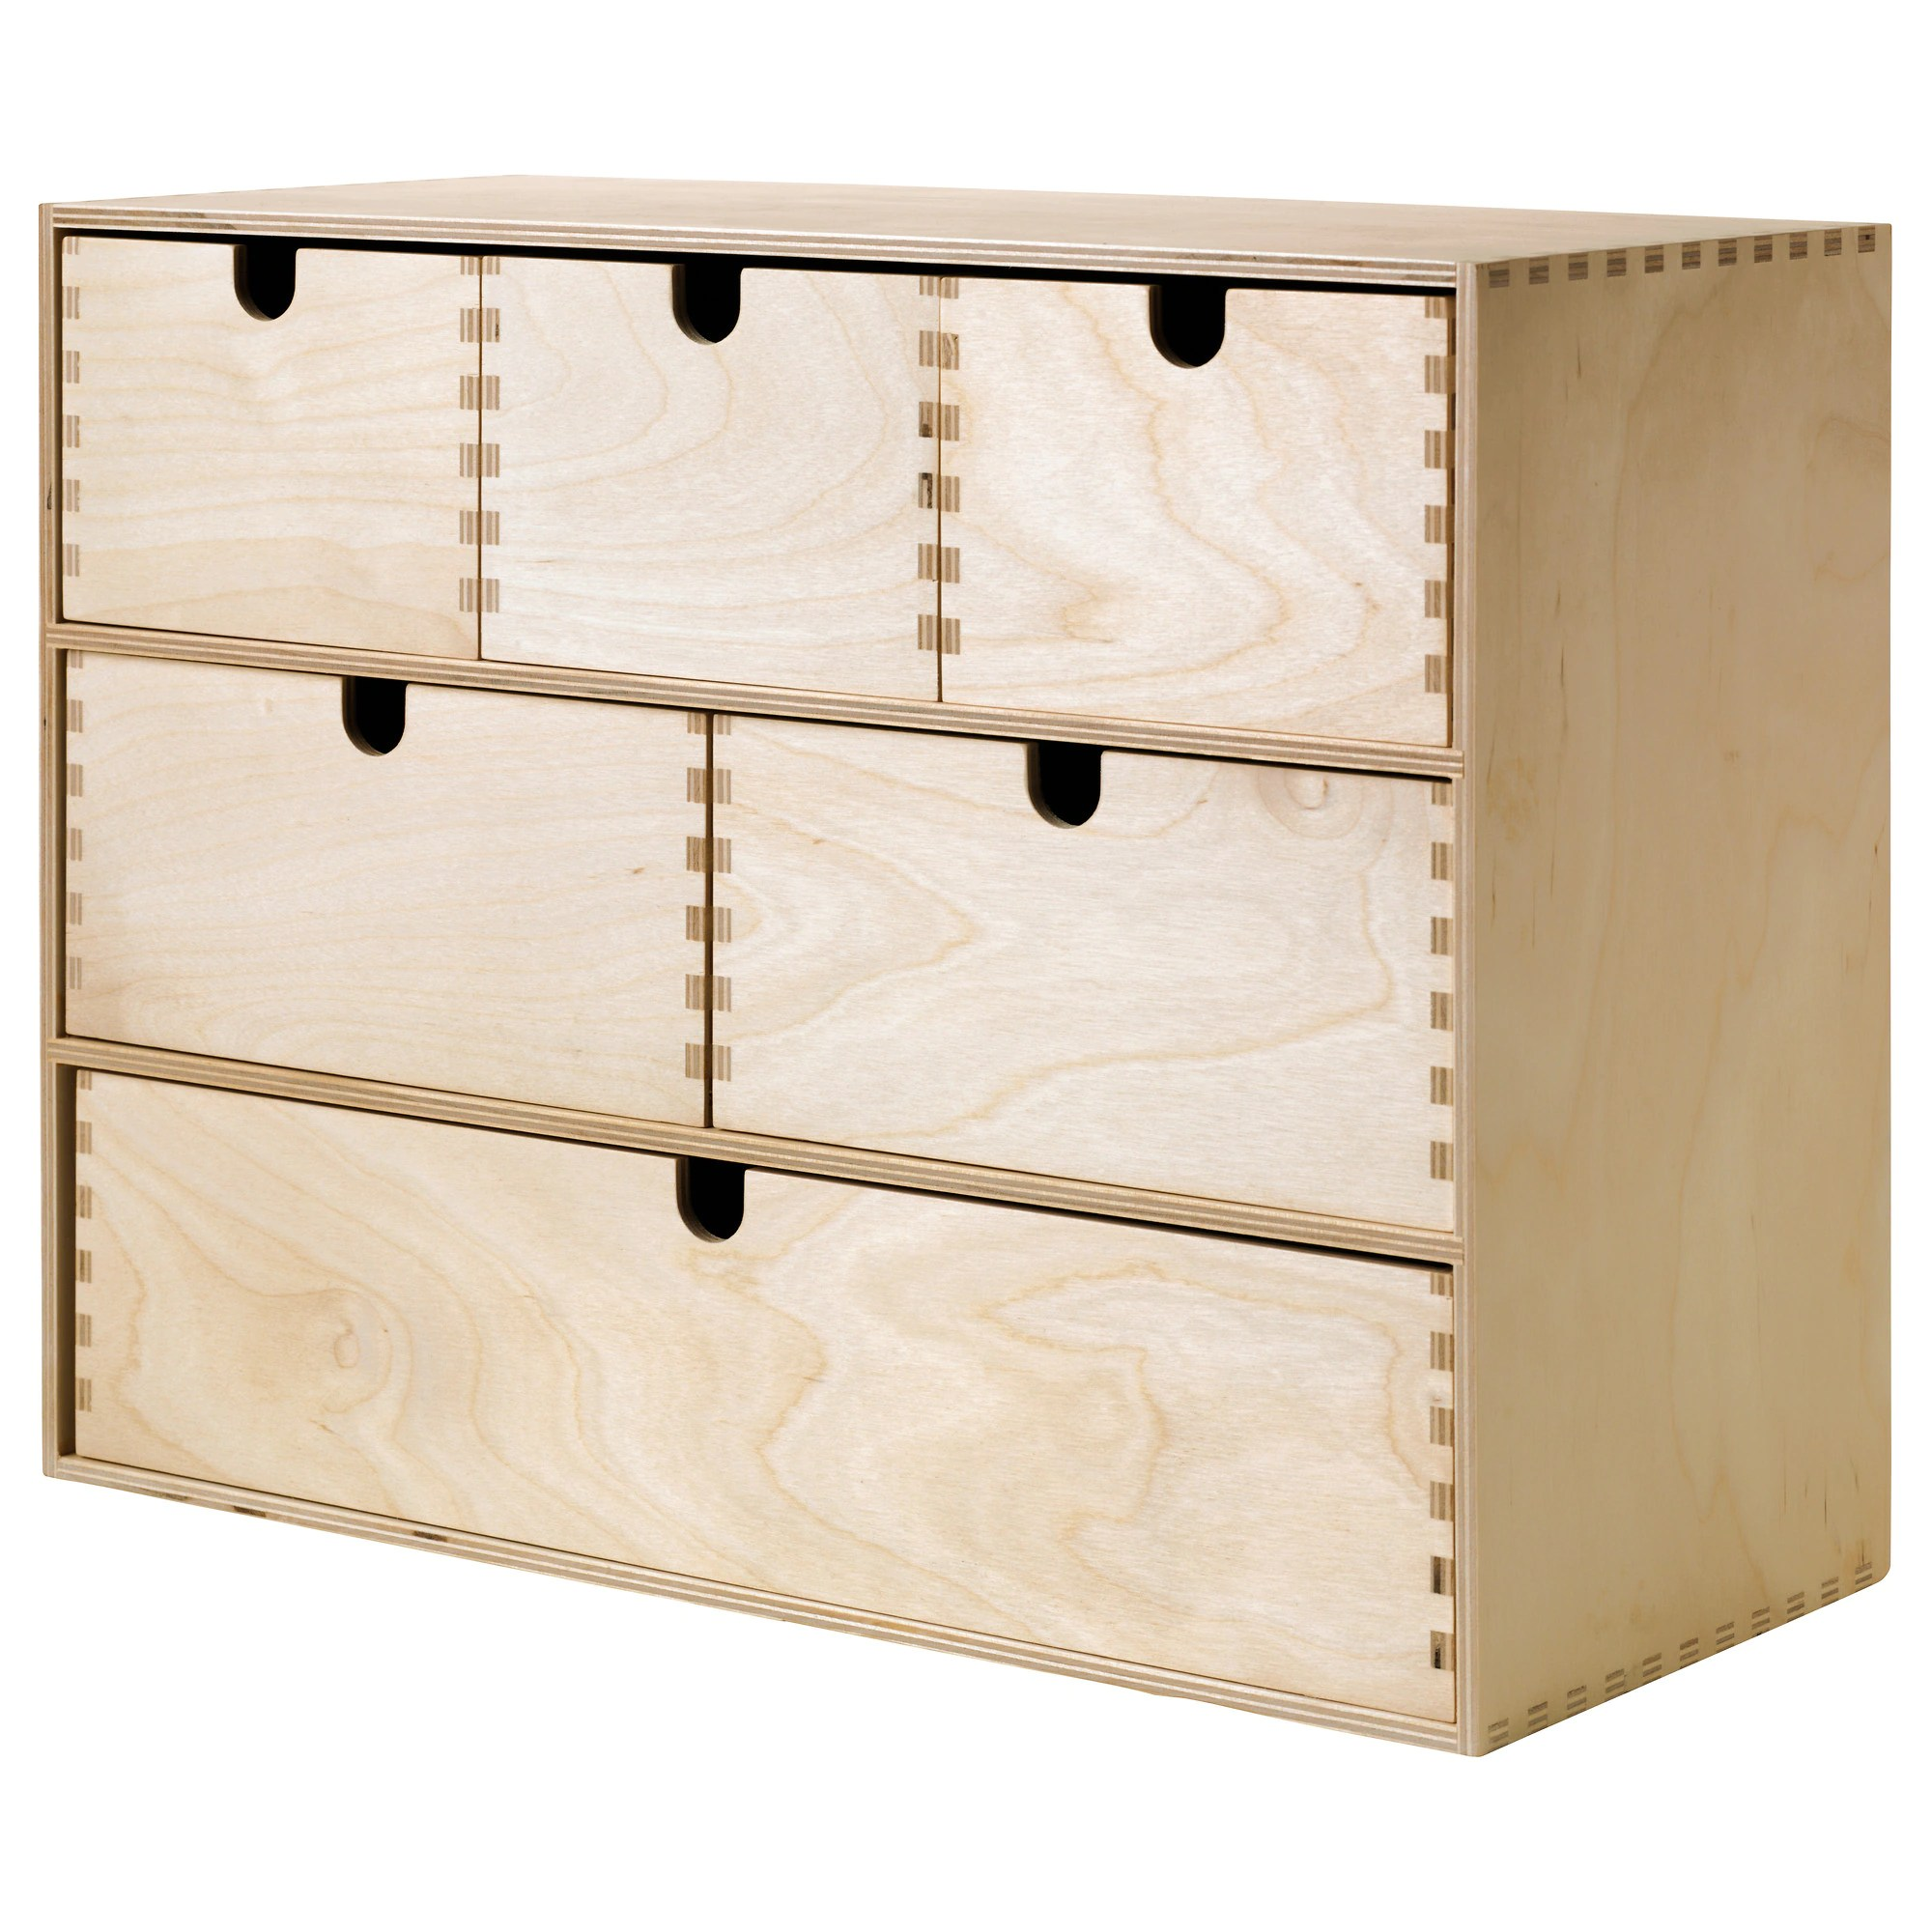 Storage Chest Ikea Moppe Mini Storage Chest Birch Plywood